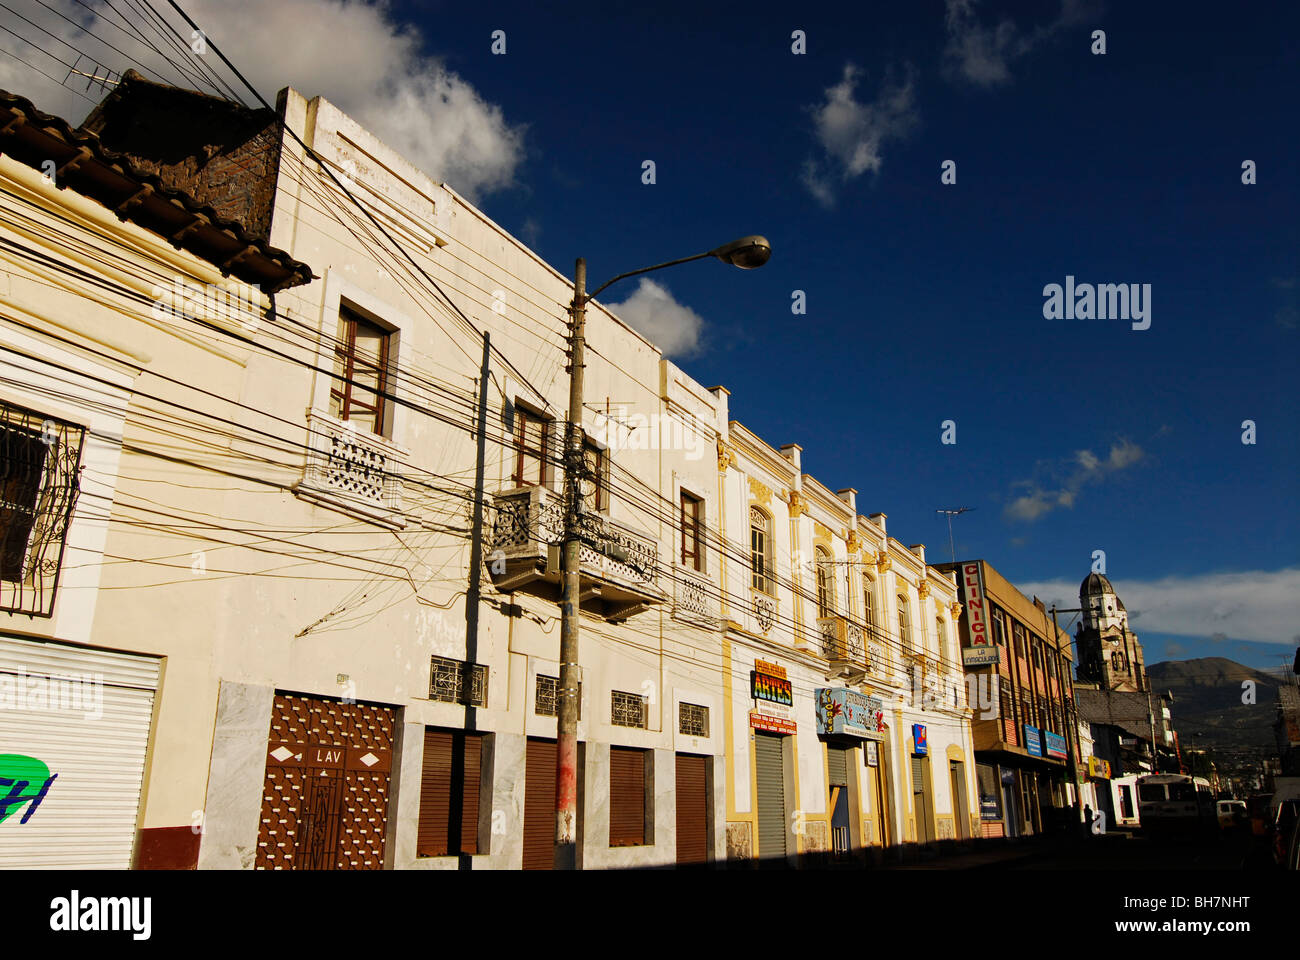 Ecuador, Ibarra, low angle view of a cobbled alley with white colonial building - Stock Image